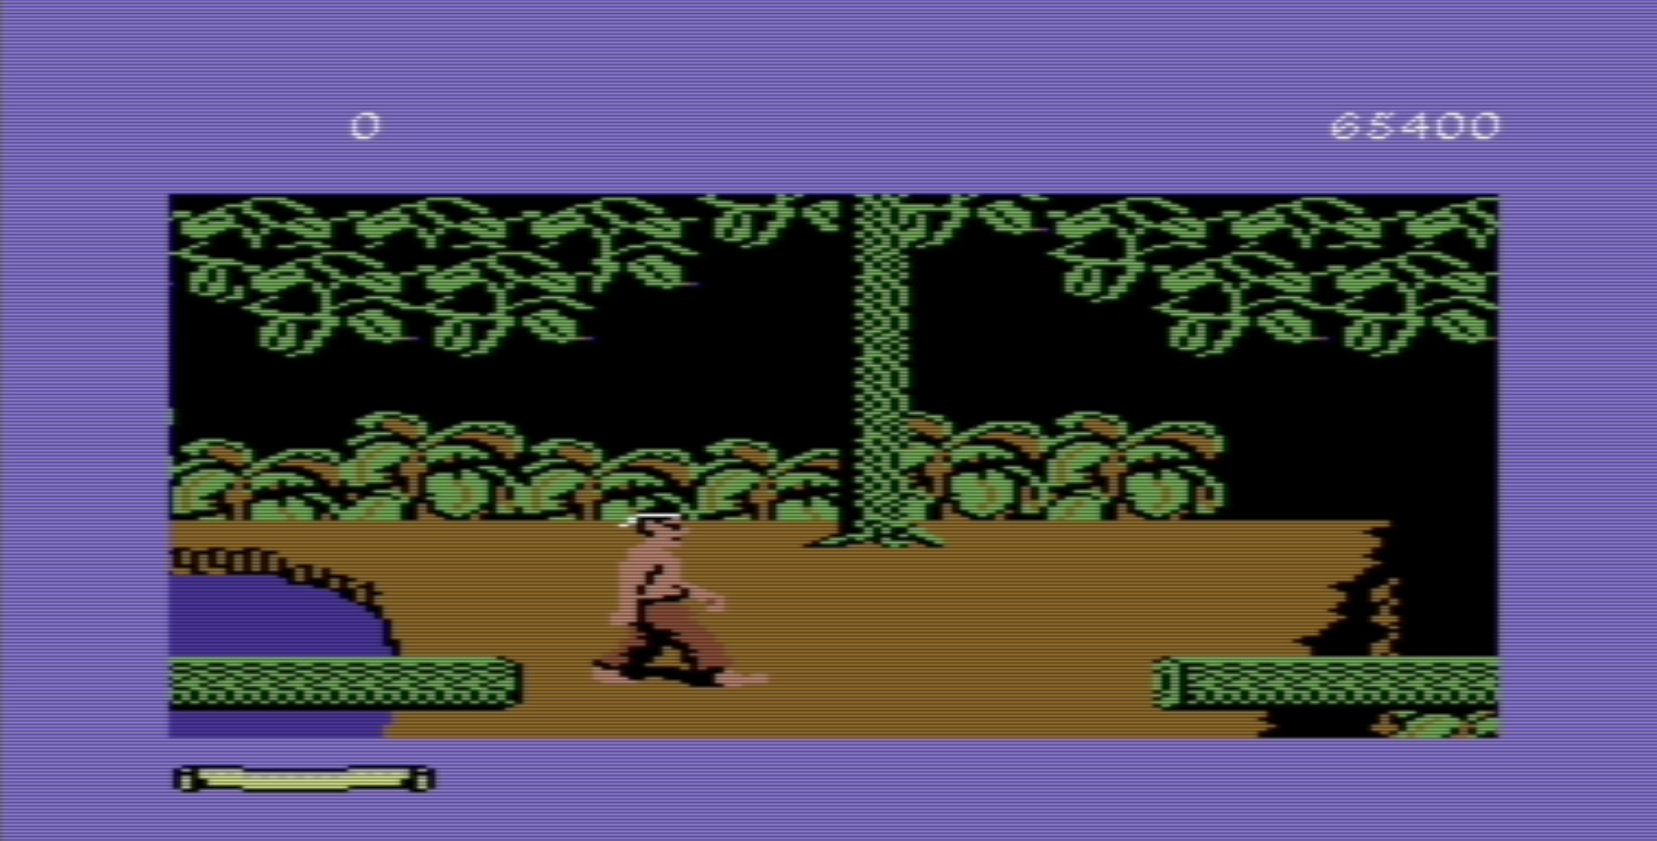 lenny2571: Fist II (Commodore 64 Emulated) 65,400 points on 2014-12-25 11:09:43